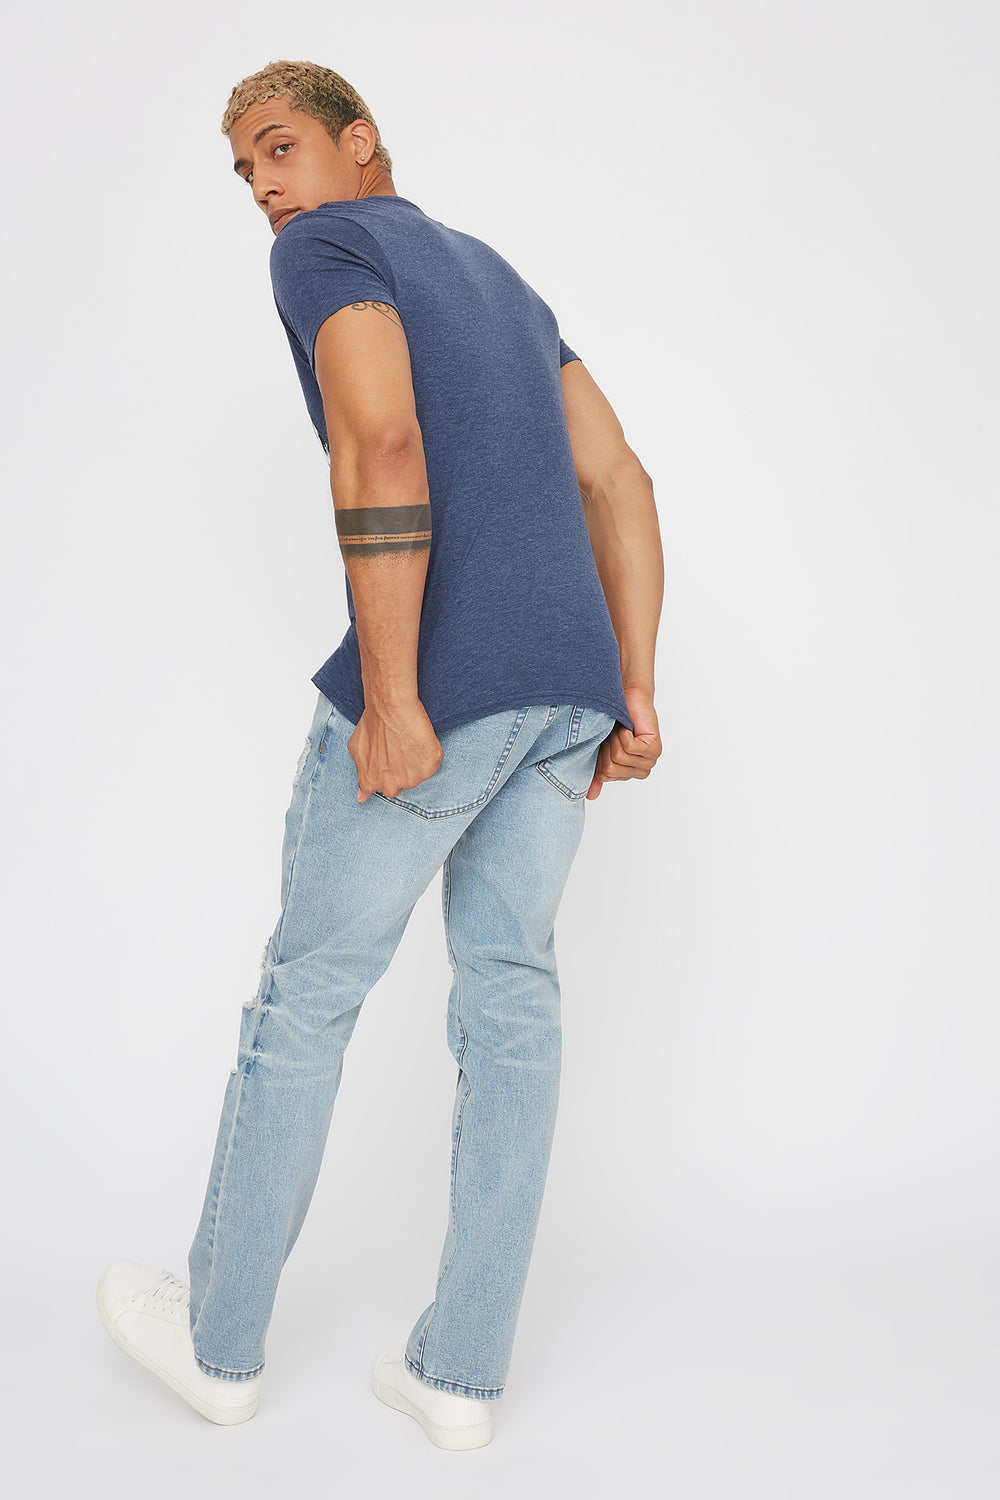 Distressed Light Wash Straight Jean Light Blue